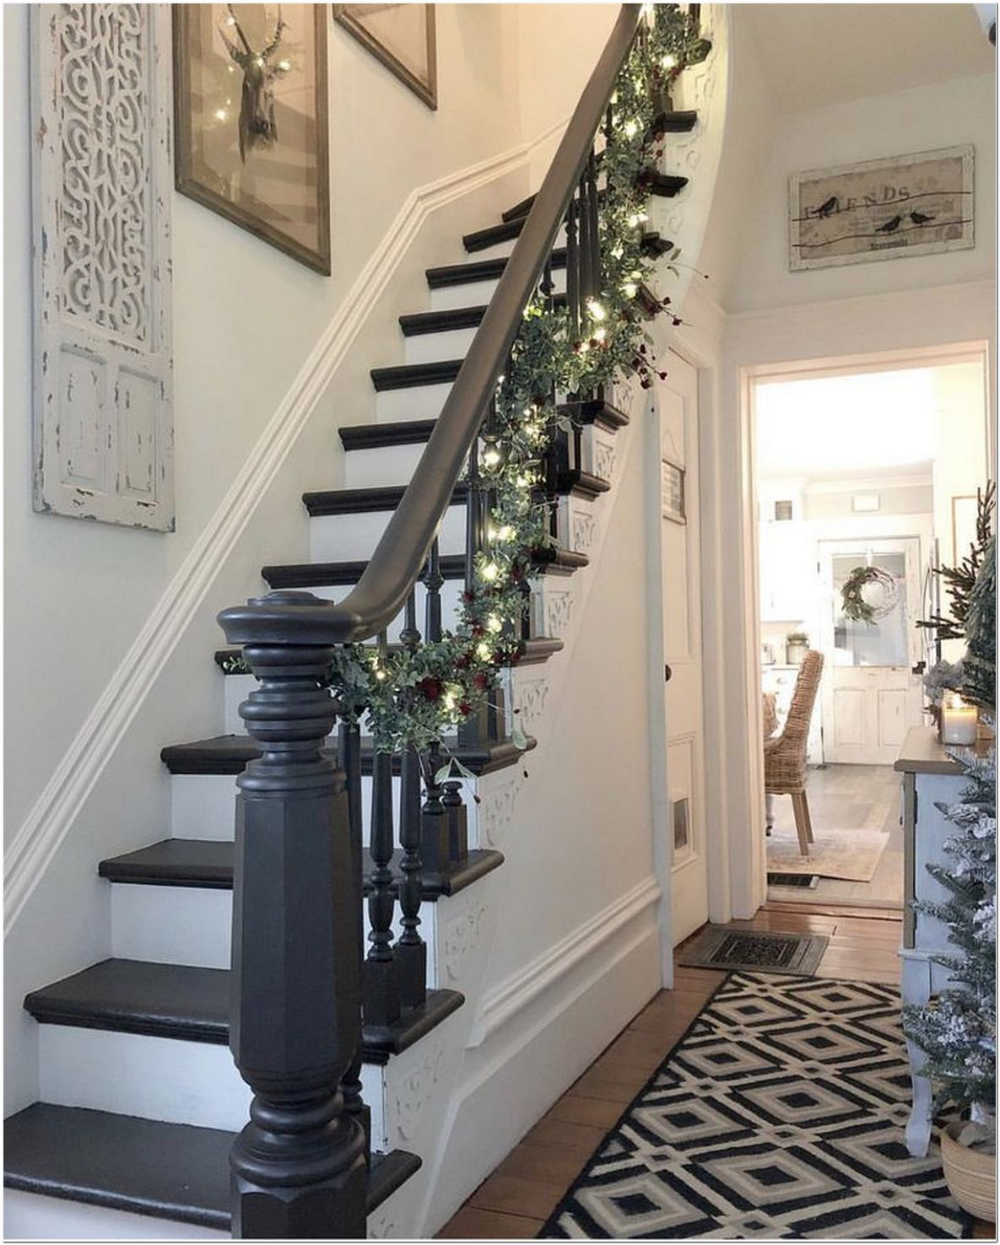 Top 70 Best Stair Railing Ideas: Top 70 Best Painted Stairs Ideas Staircase Designs 1 In